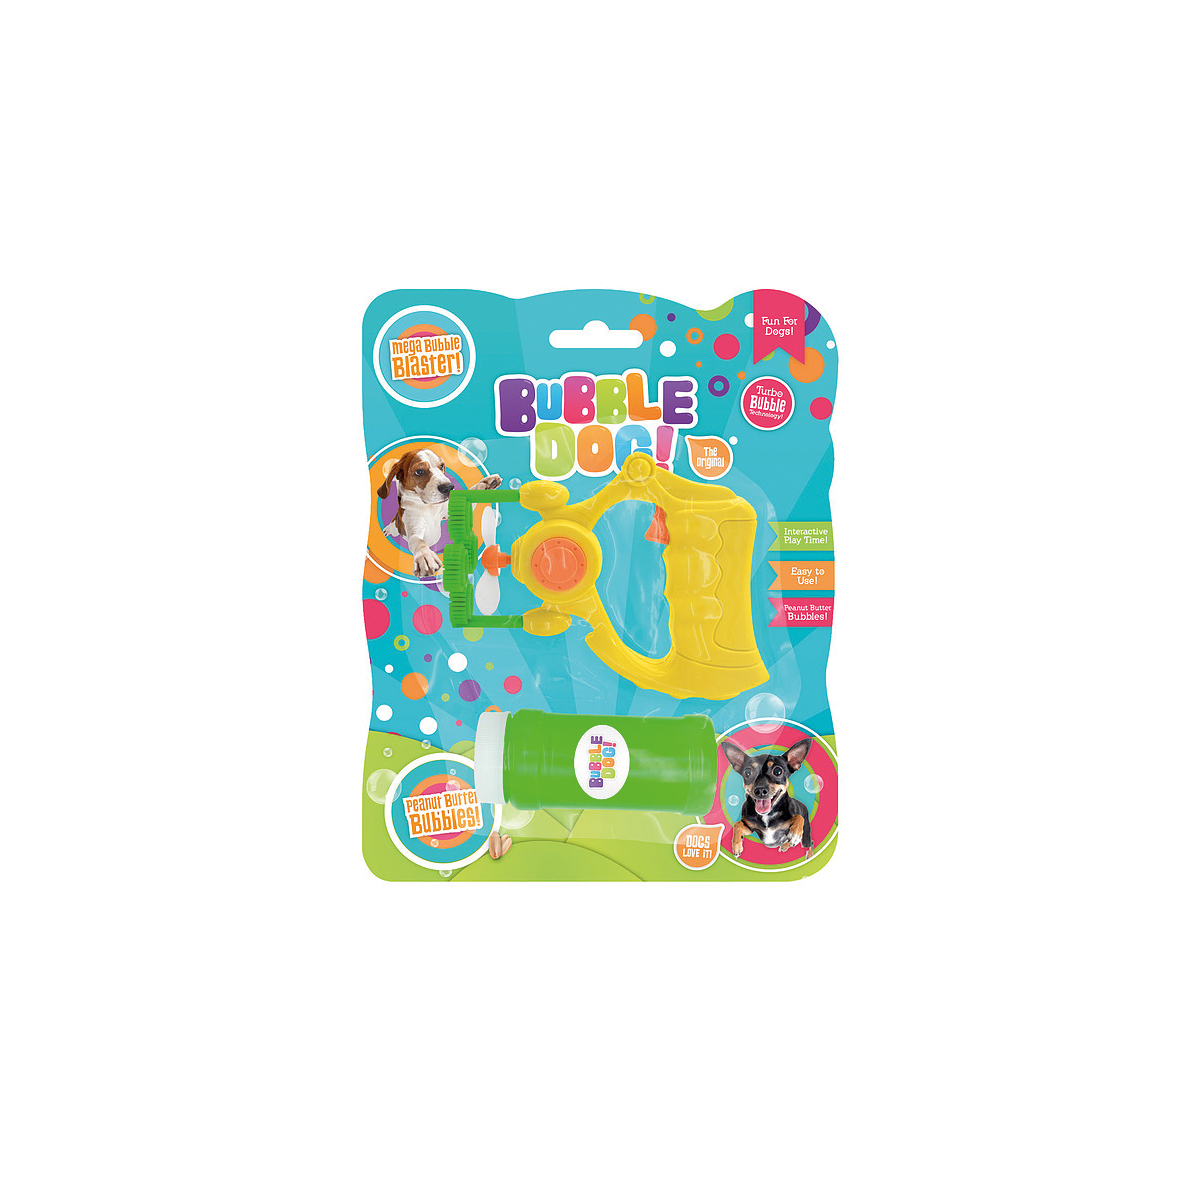 Bubble dog small bubbles electric gun geel